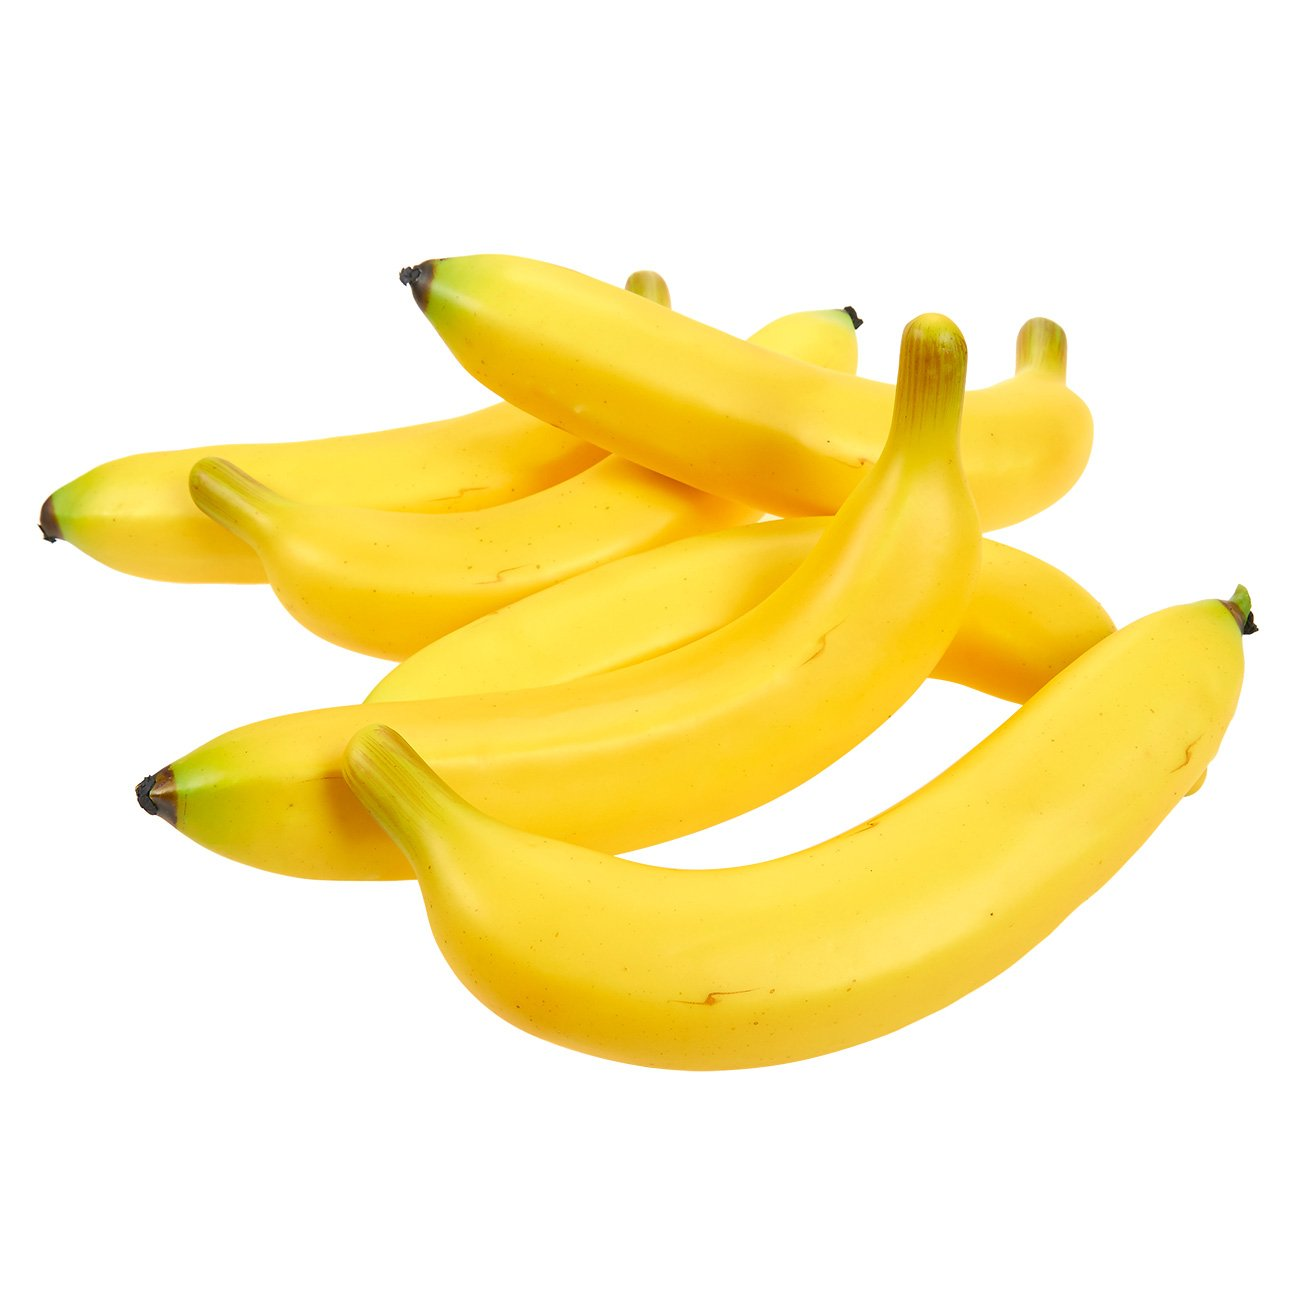 Juvale Set of 6 Individual Fake Fruit Bananas - Artificial Fruit Plastic Bananas Still Life Paintings, Storefront Decoration, Kitchen Decor, Yellow, 8 x 3.7 x 1.5 inches